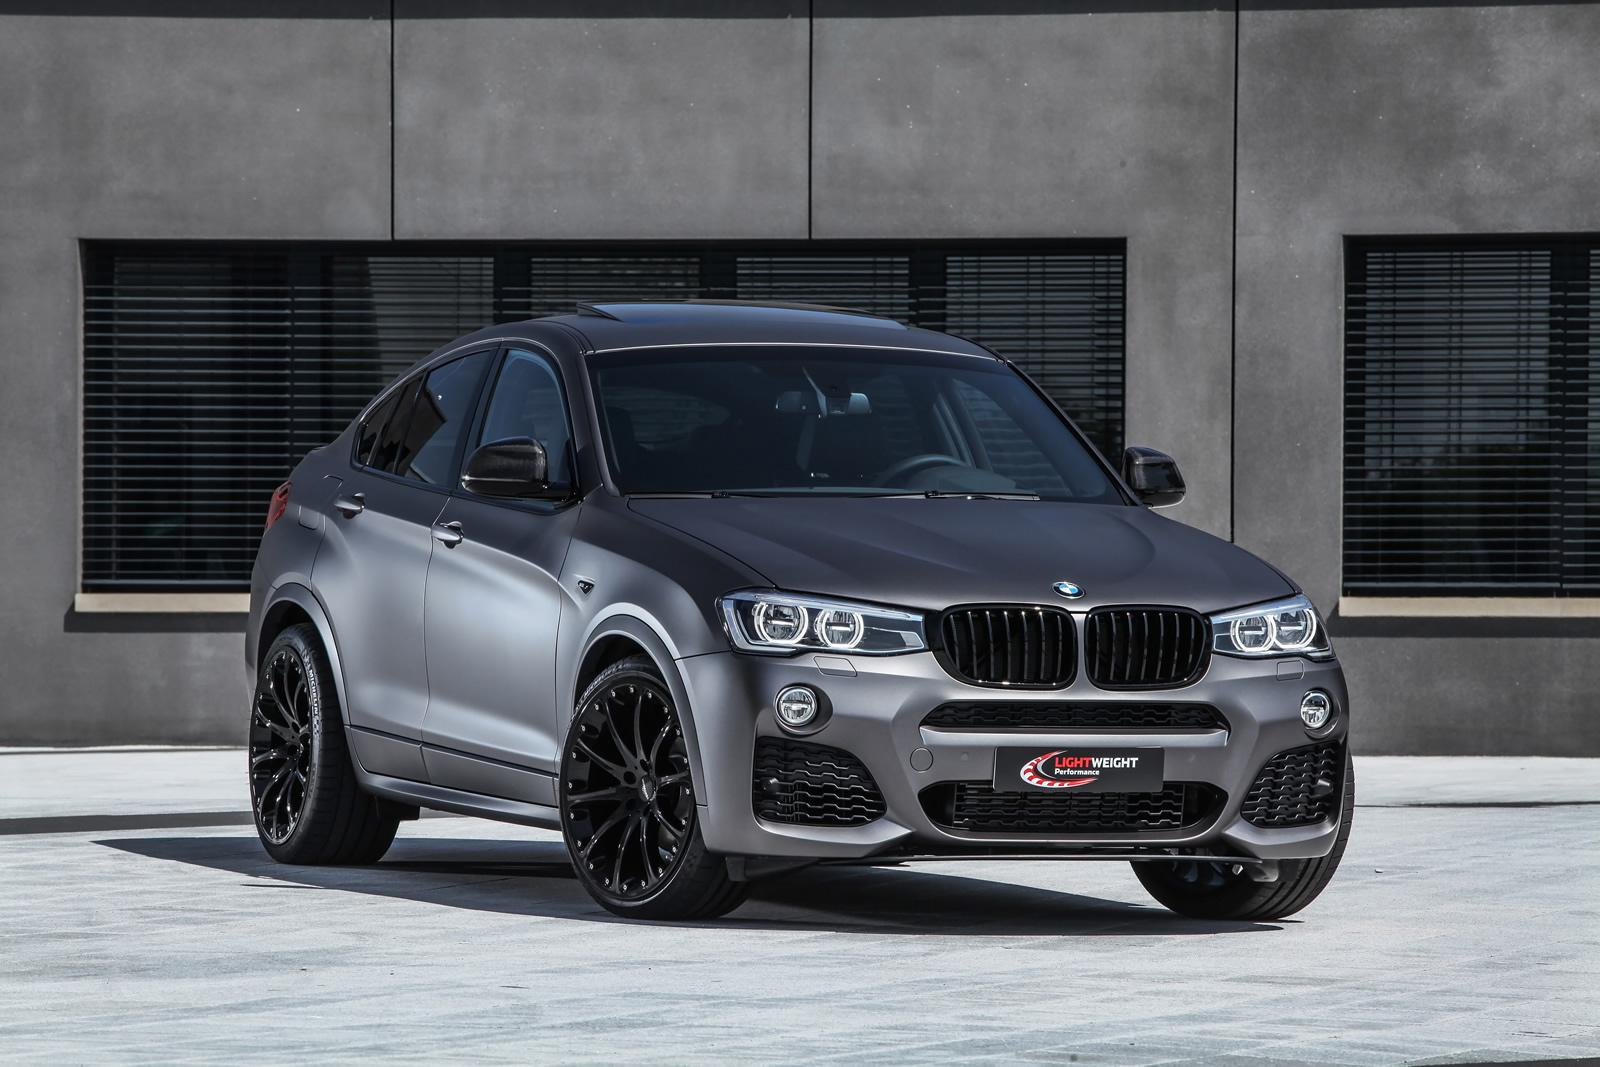 Tuning Firm 'Lightweight' Reveals Upgraded BMW X4 - GTspirit